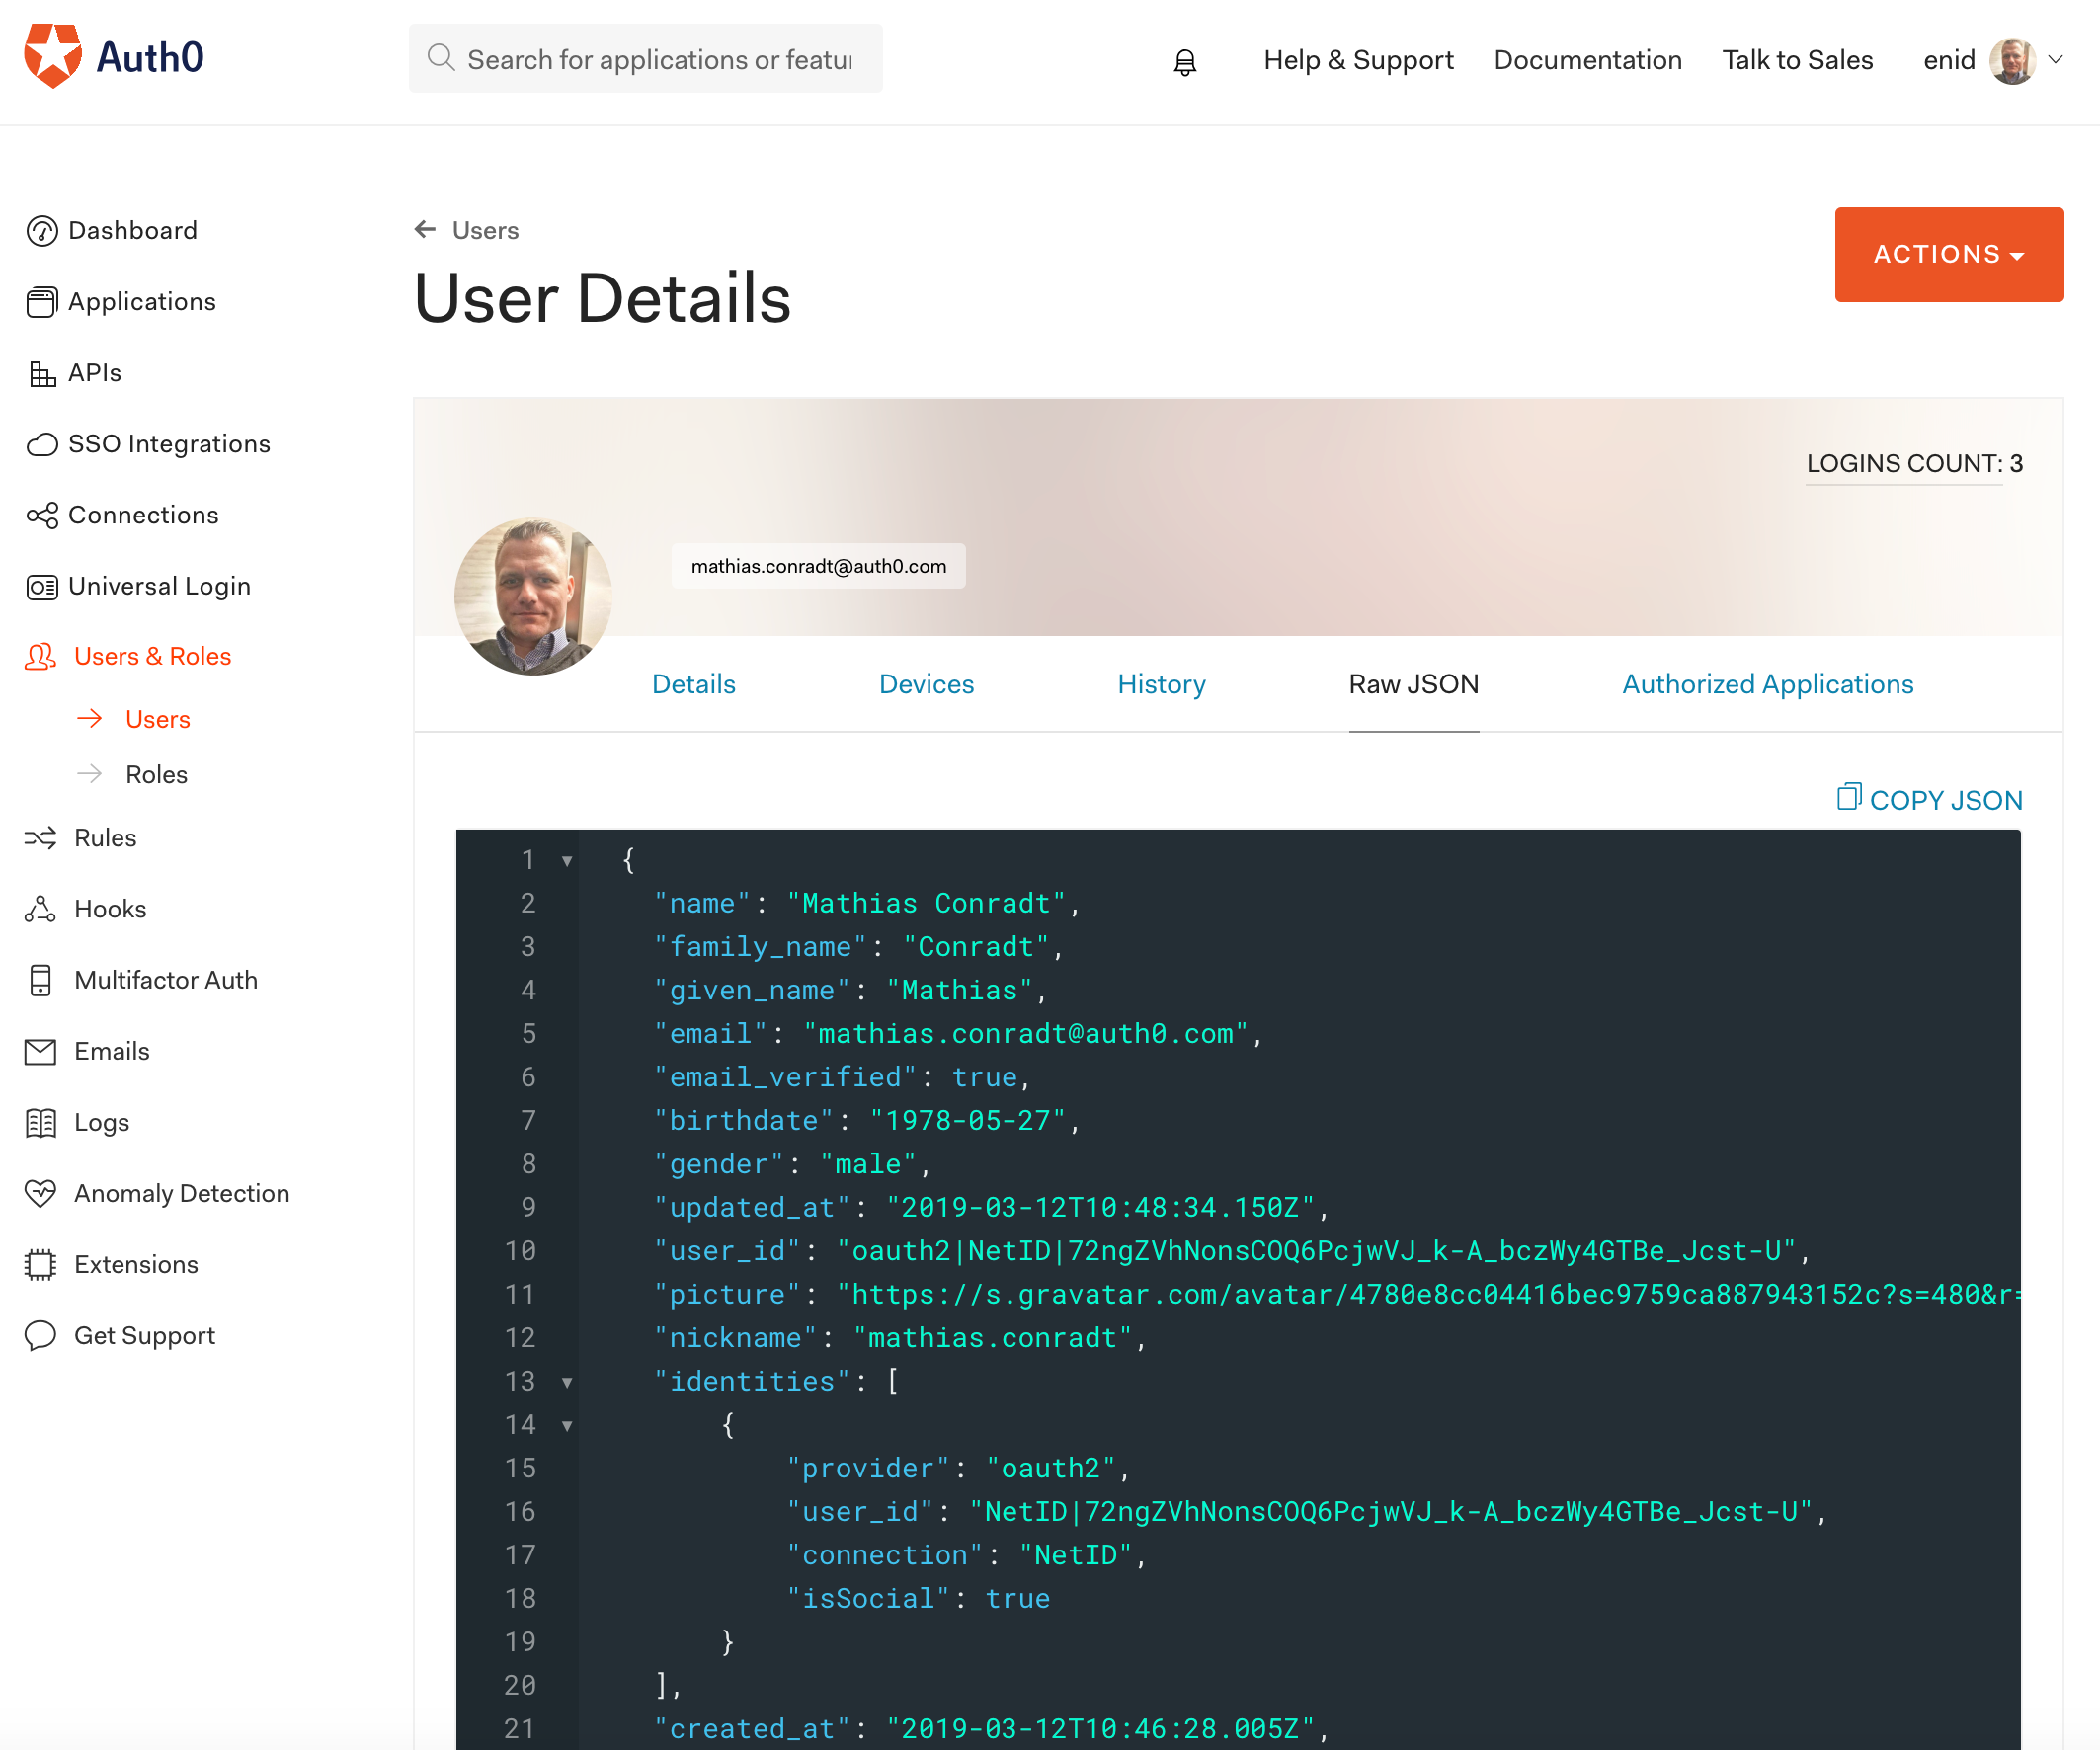 Viewing raw JSON information about the registered user